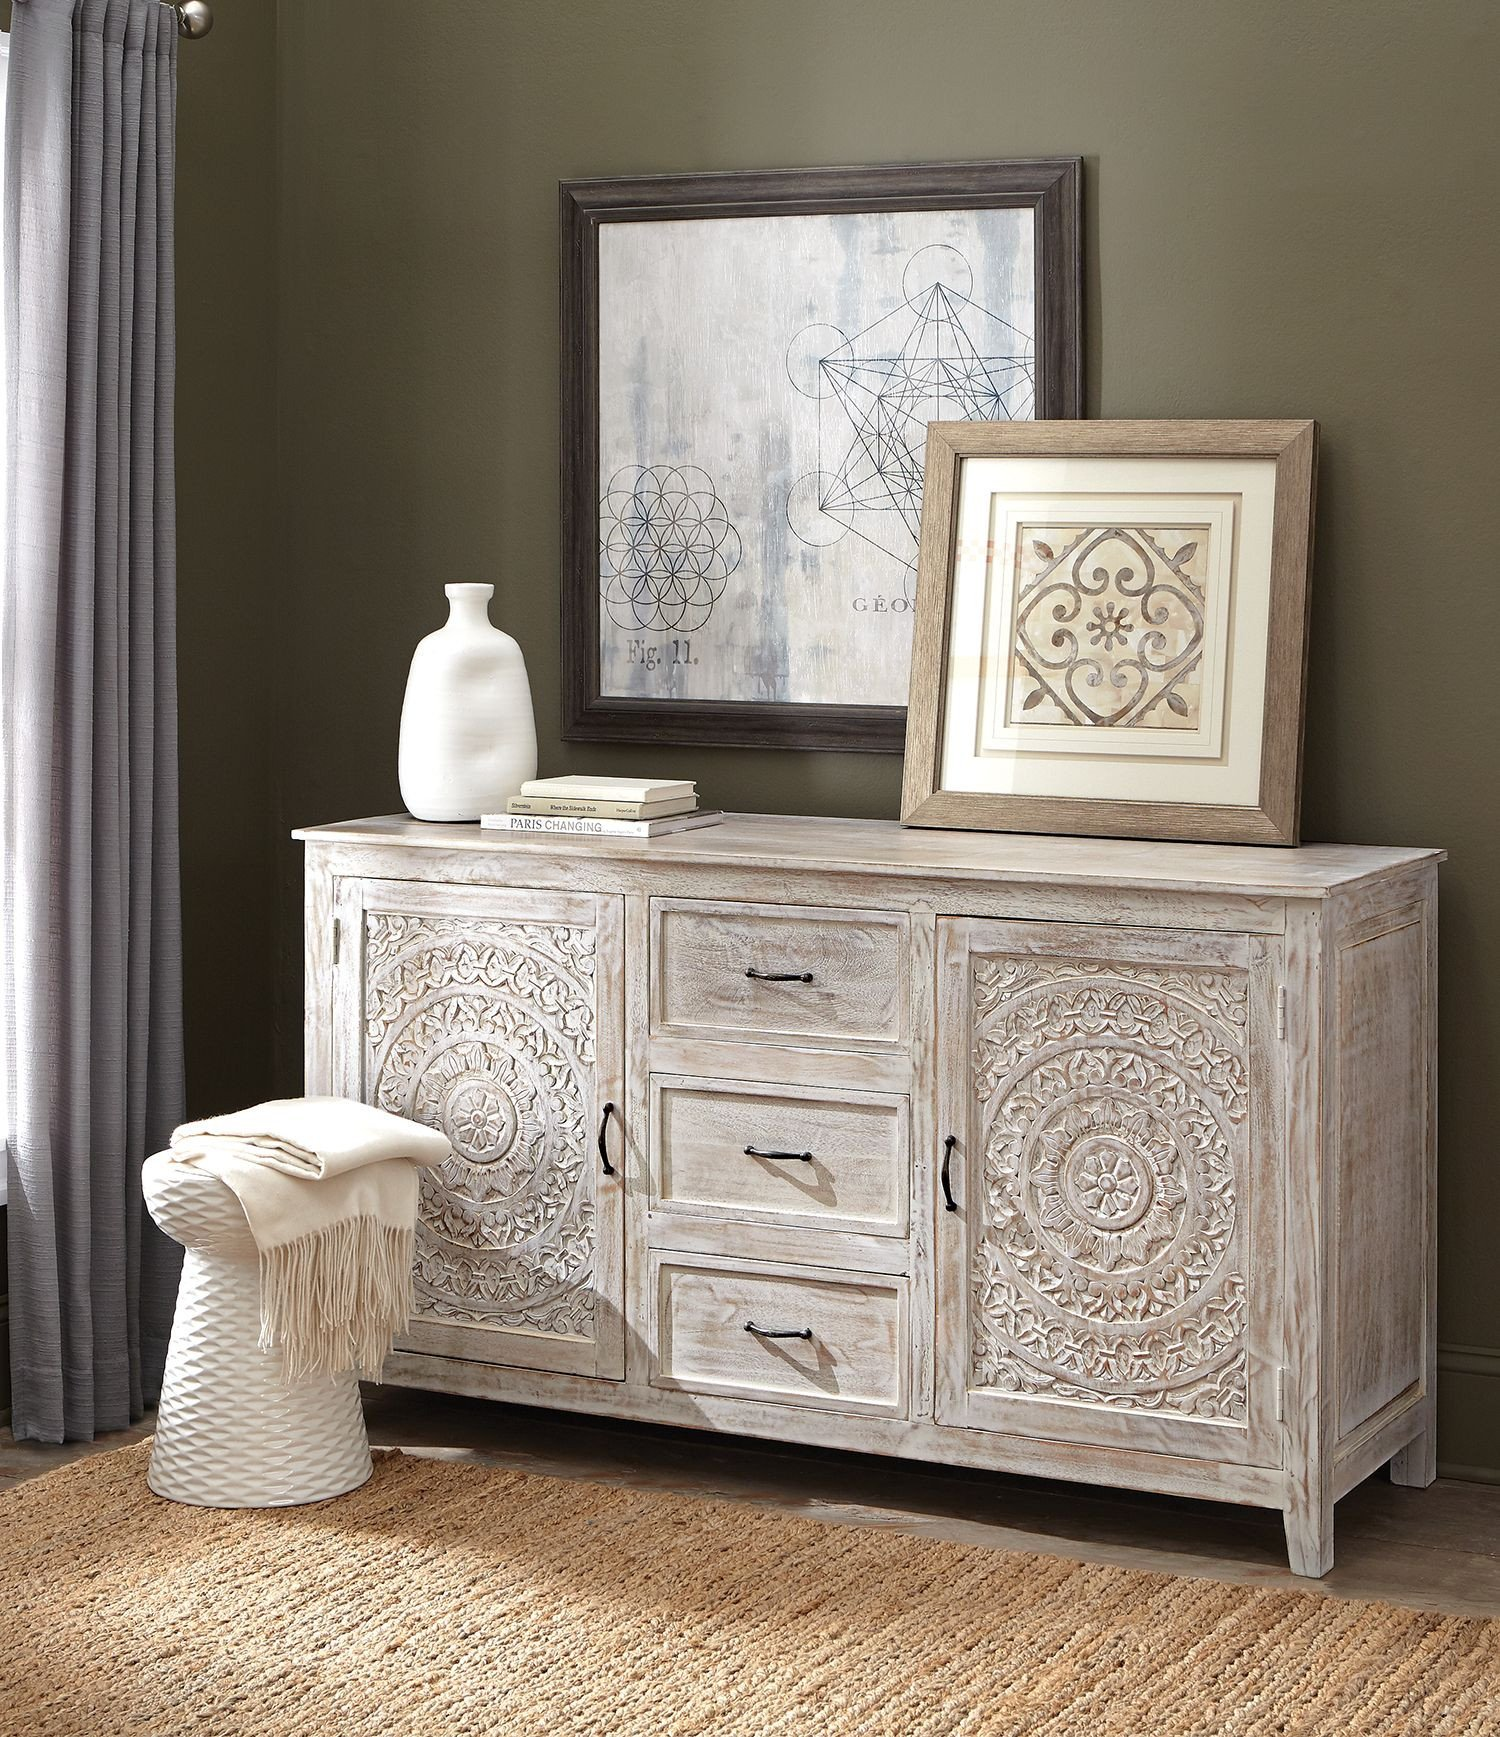 White Washed Bedroom Furniture Inspirational Home Decorators Collection Chennai 3 Drawer White Wash